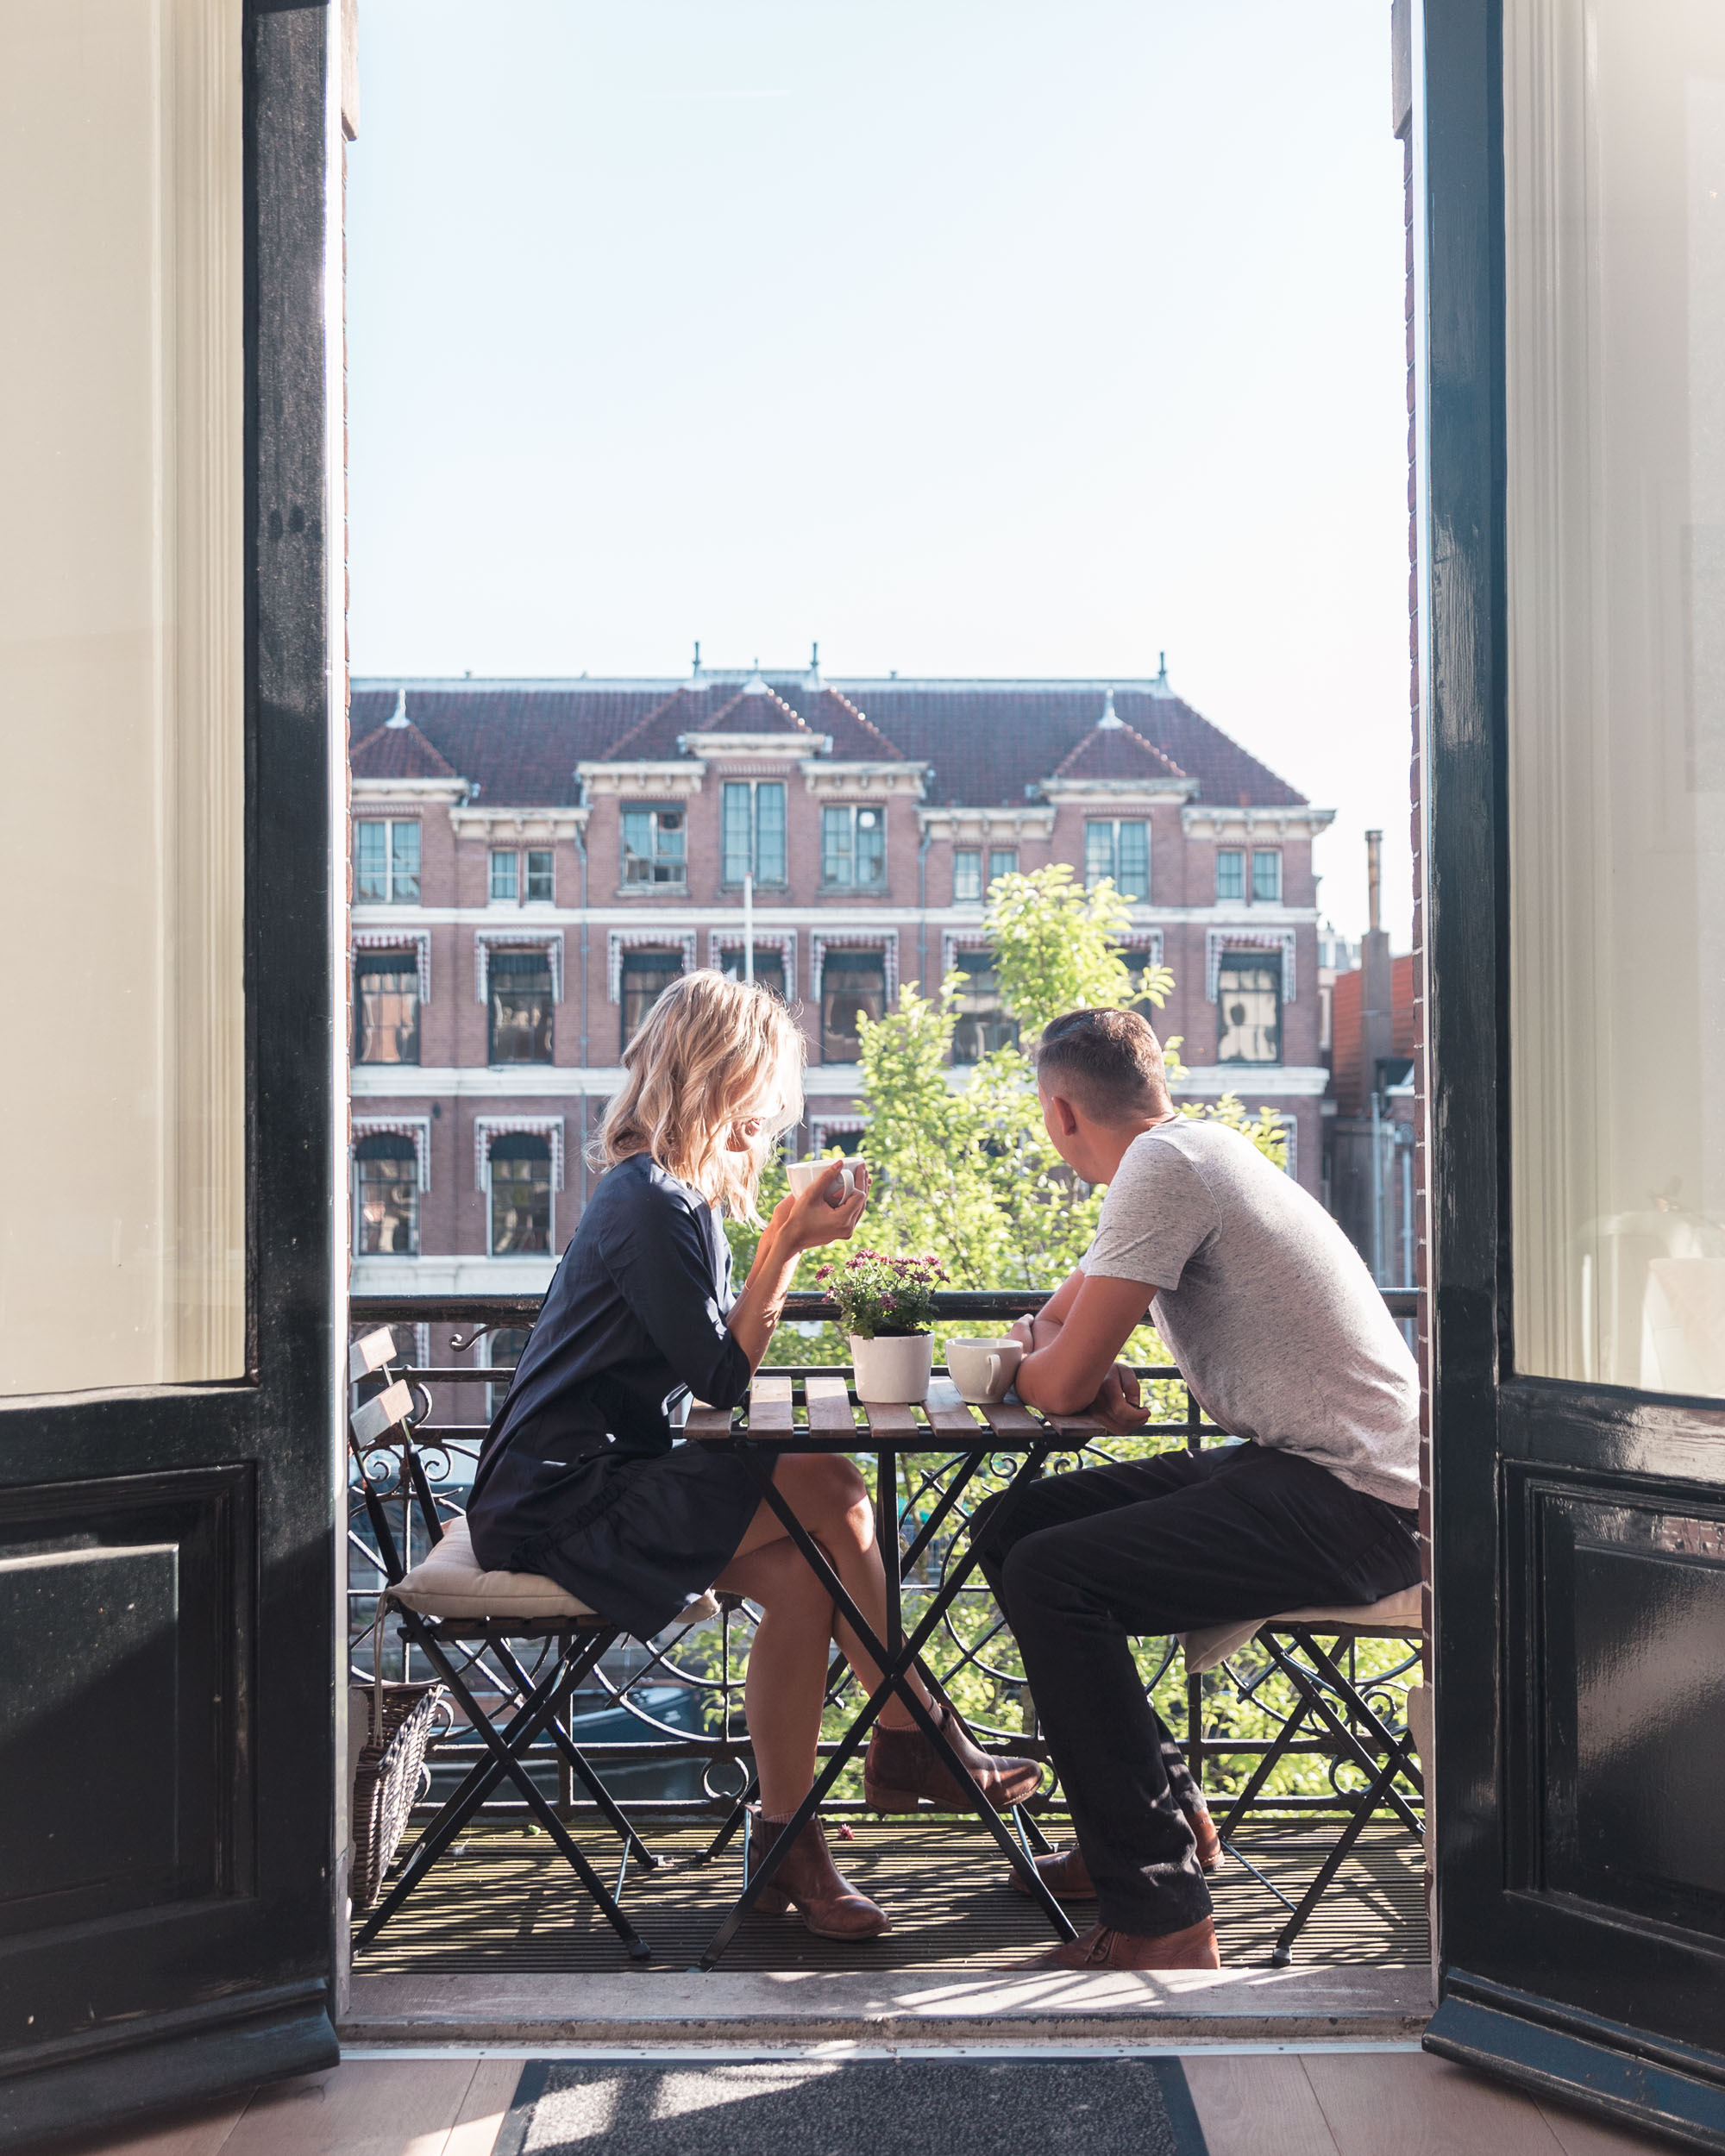 Dutch apartment with a balcony in Amsterdam, Holland, The Netherlands